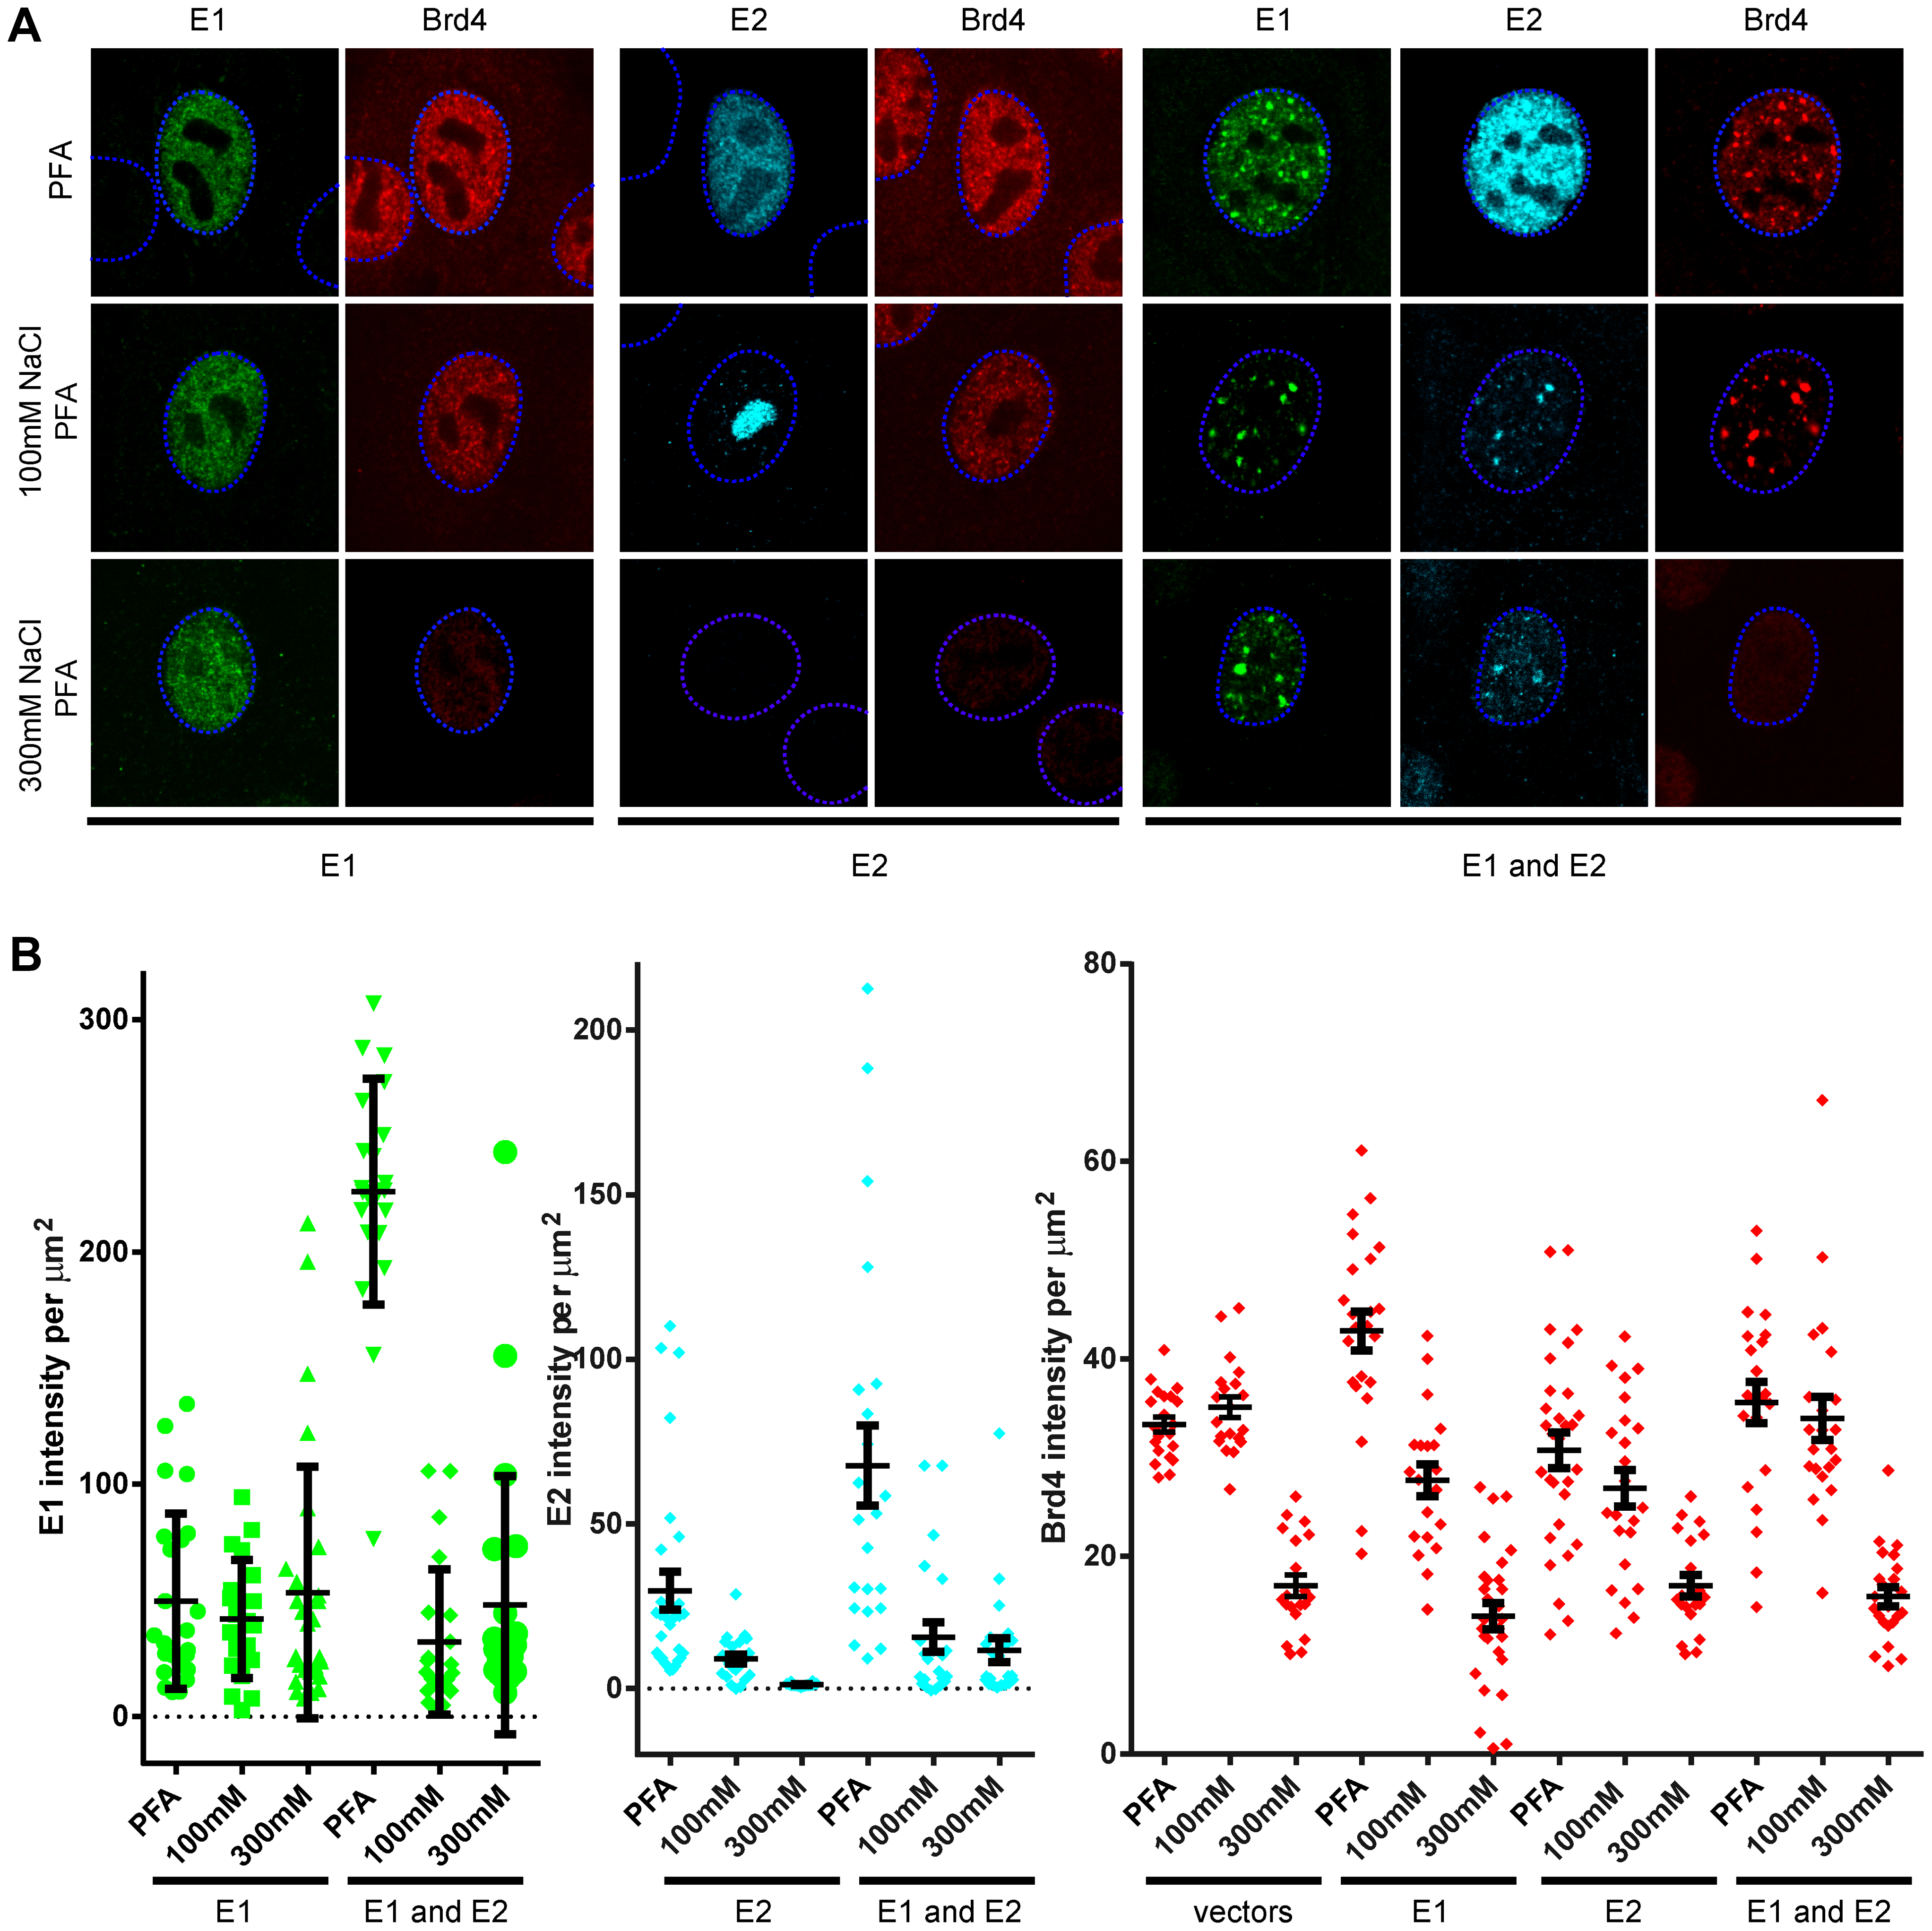 Salt extraction of cells expressing HPV16 E1 and E2 show that the E1 protein binds most tightly to host nuclei.